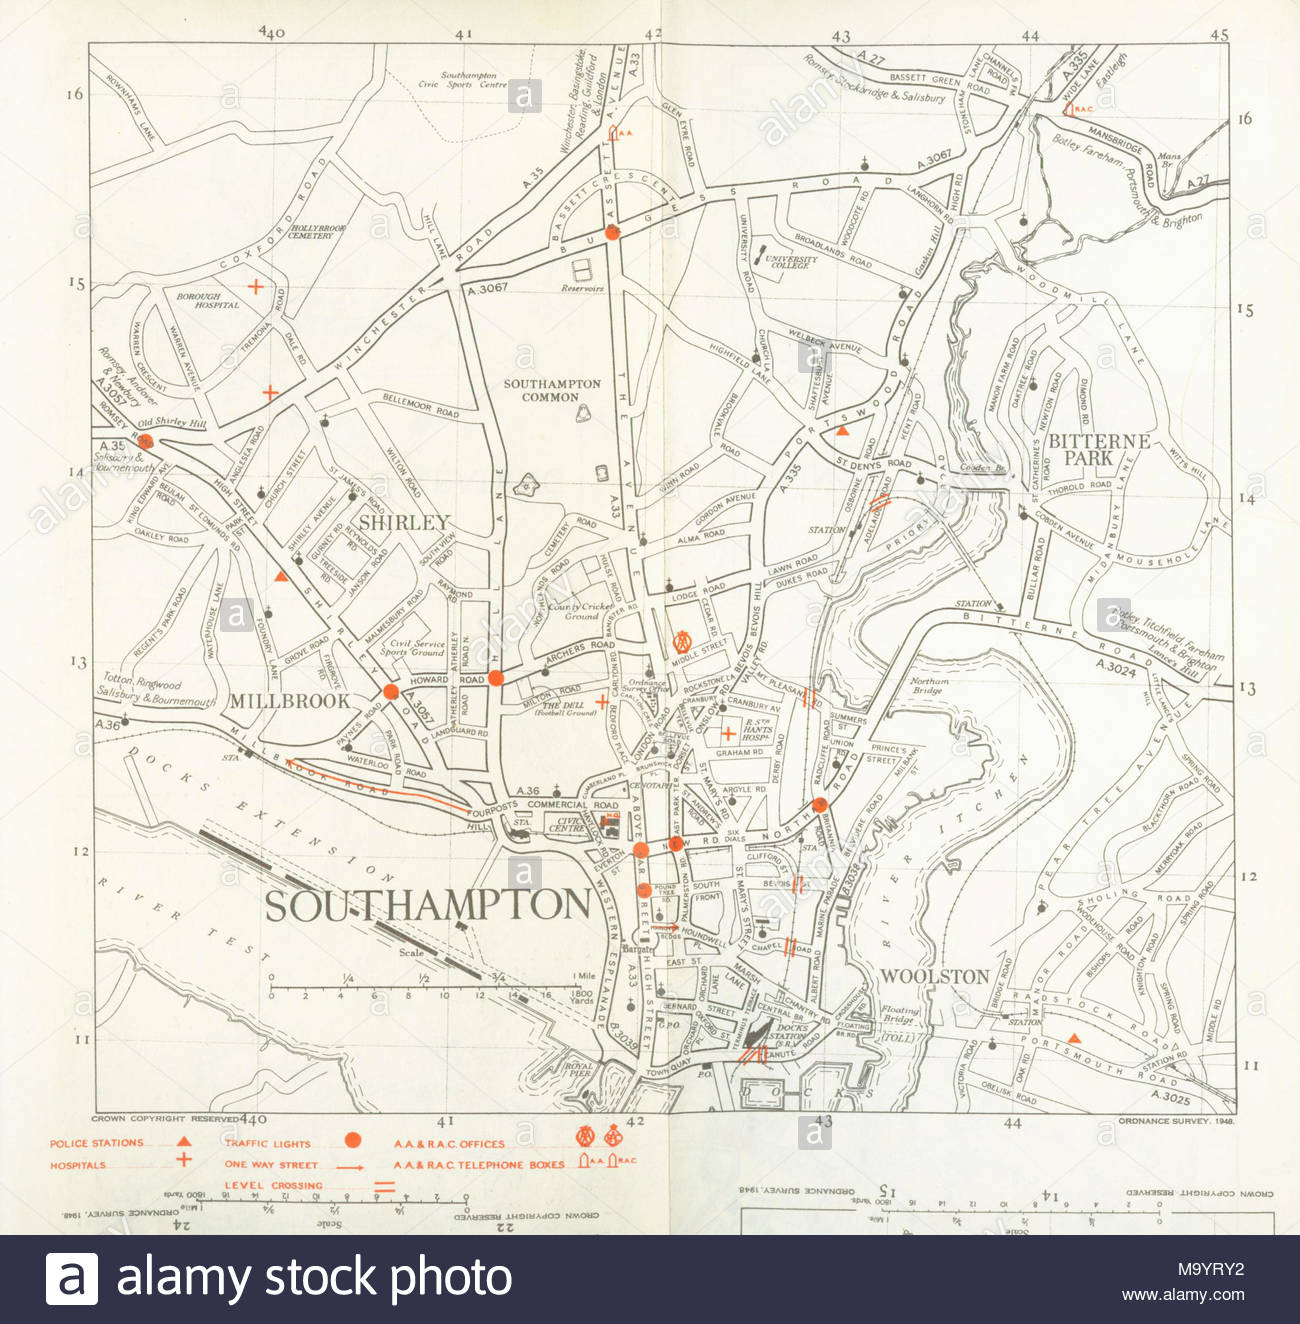 1948 World Map.A Road Map Of Southampton From 1948 Produced By Os Stock Photo